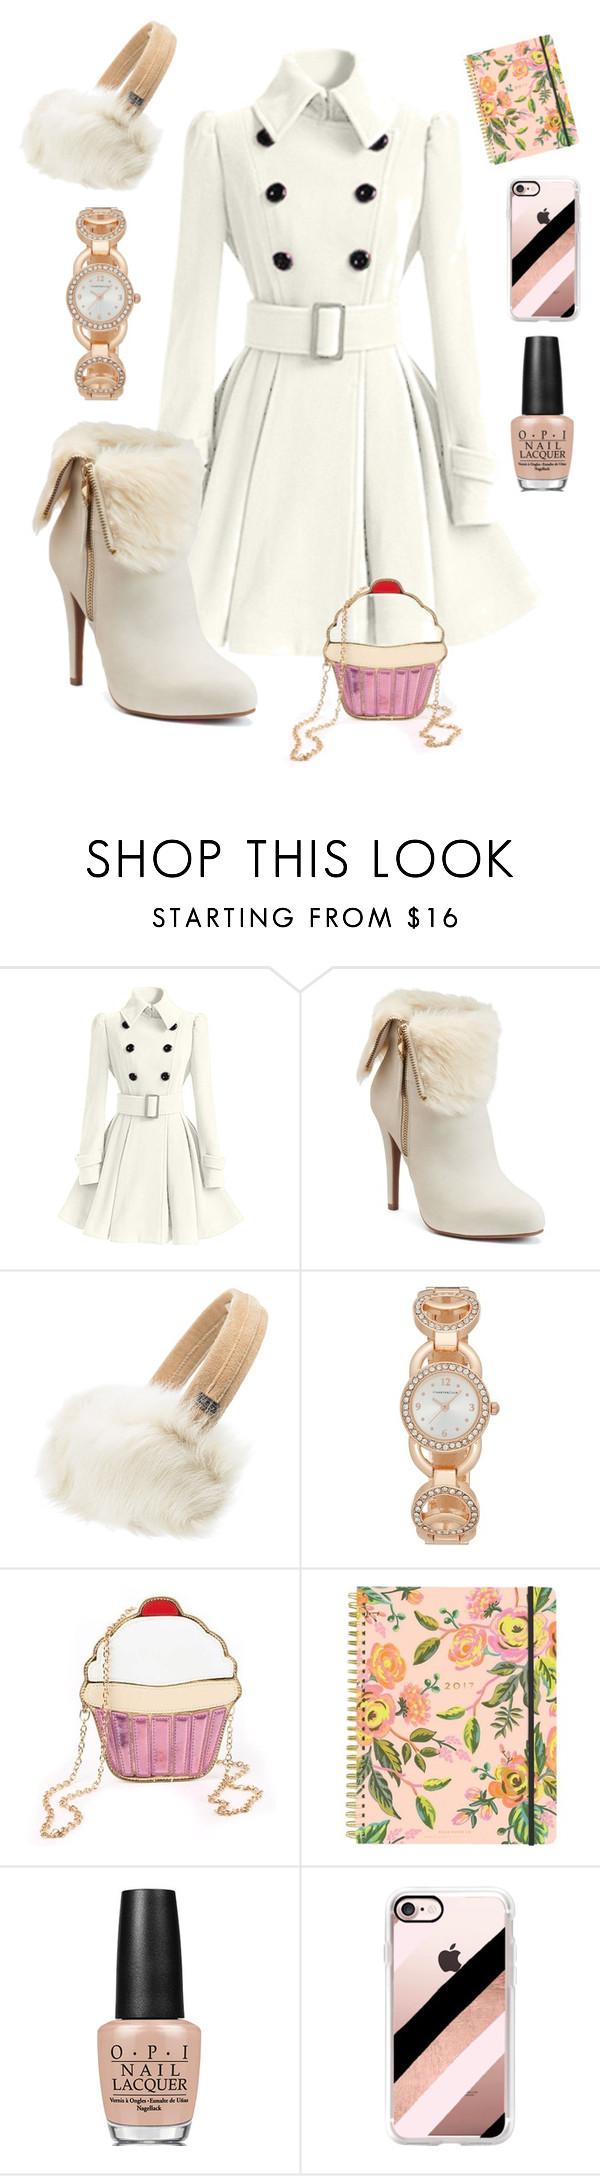 """""""Vanilla Chic"""" by discobubbles on Polyvore featuring Jennifer Lopez, UGG, Charter Club, Rifle Paper Co, OPI and Casetify"""